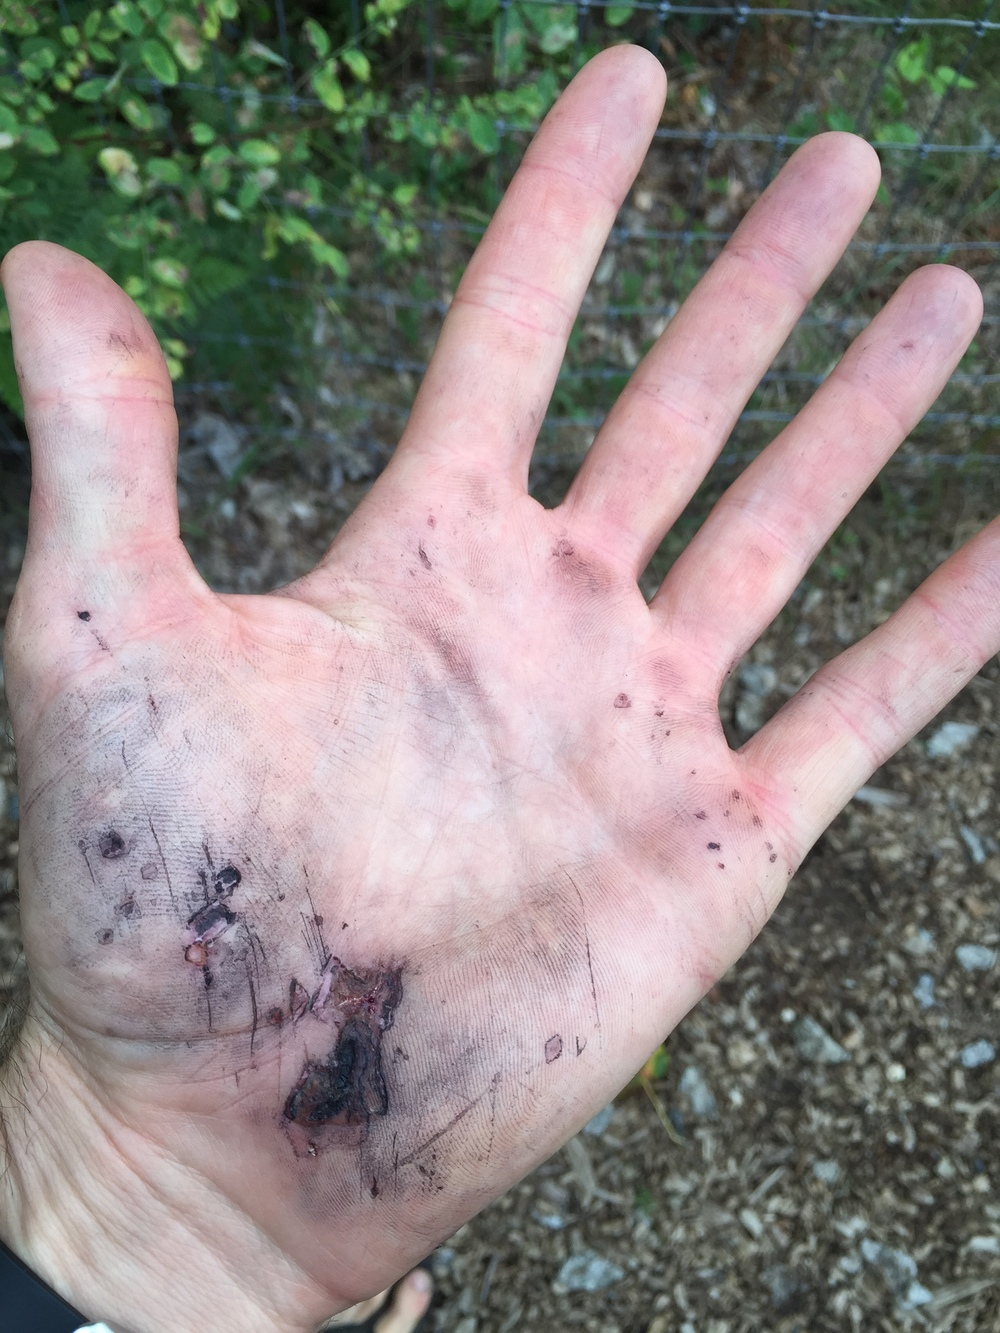 Remnants from the pemi loop that was re-opened in Sunapee last week. The black is from the bike gloves which were a smart choice for today's race.